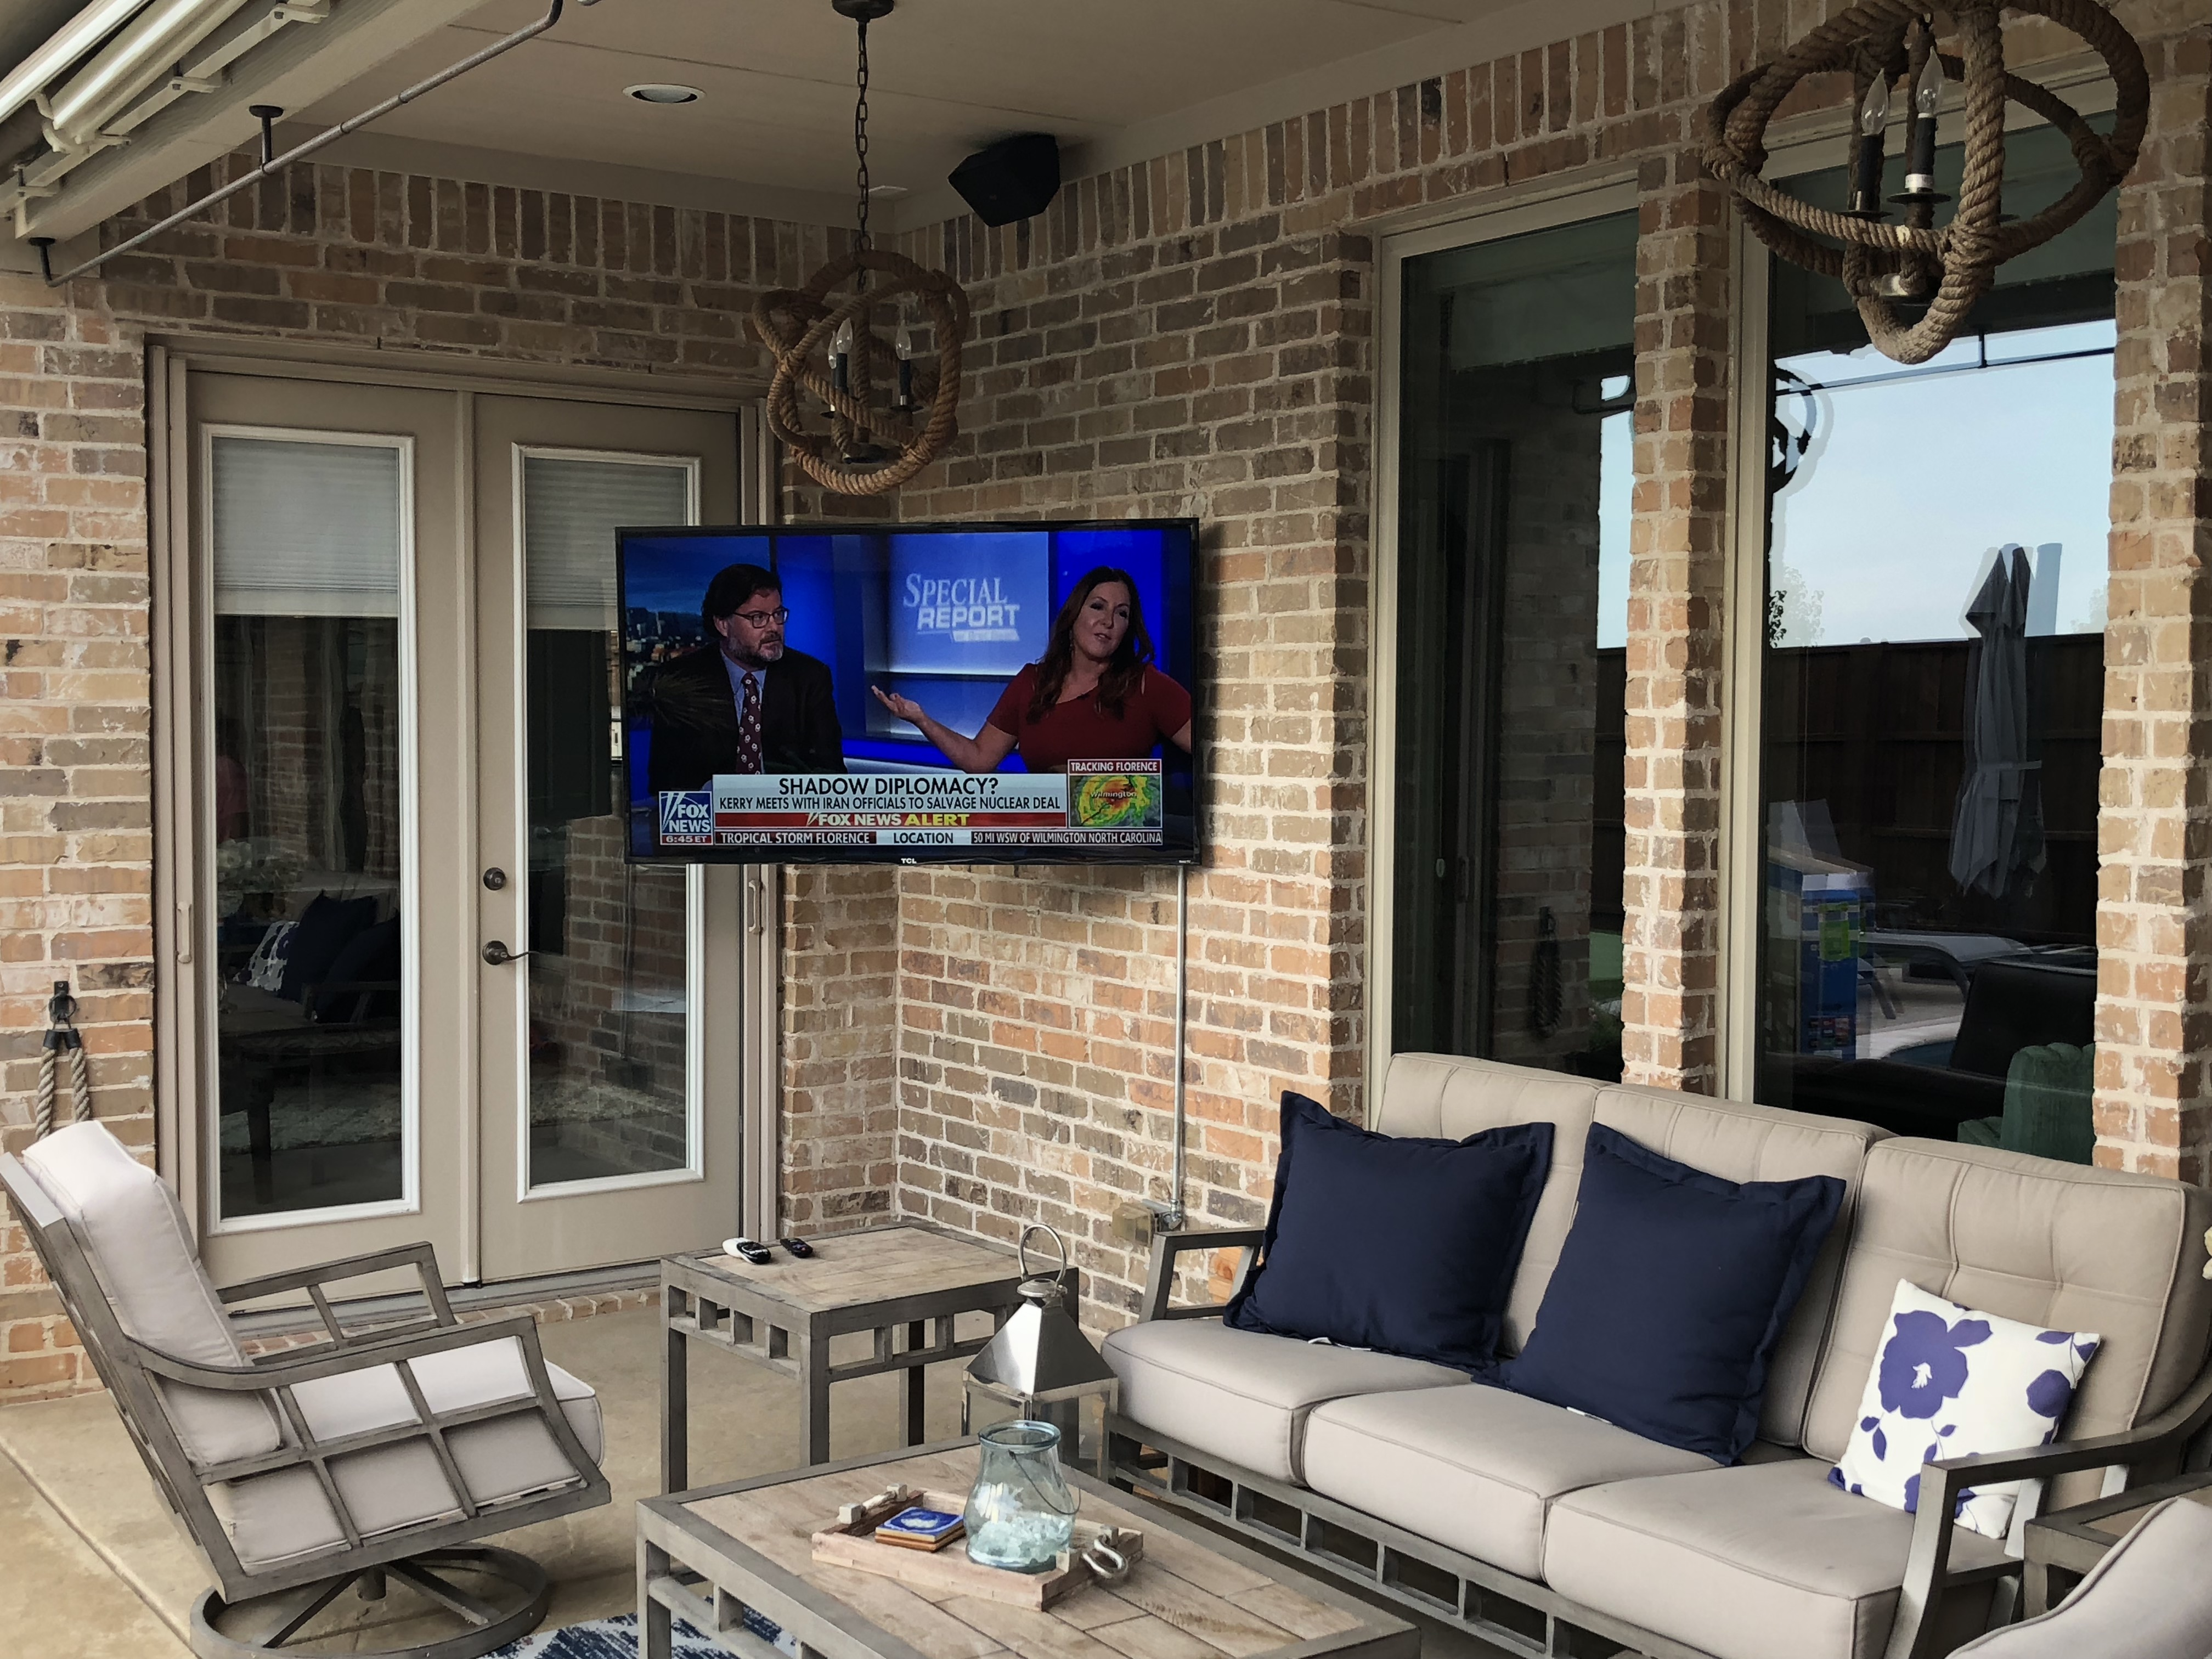 Outdoor patio tv mount speakers next gen audio video for Installing in wall speakers on exterior wall